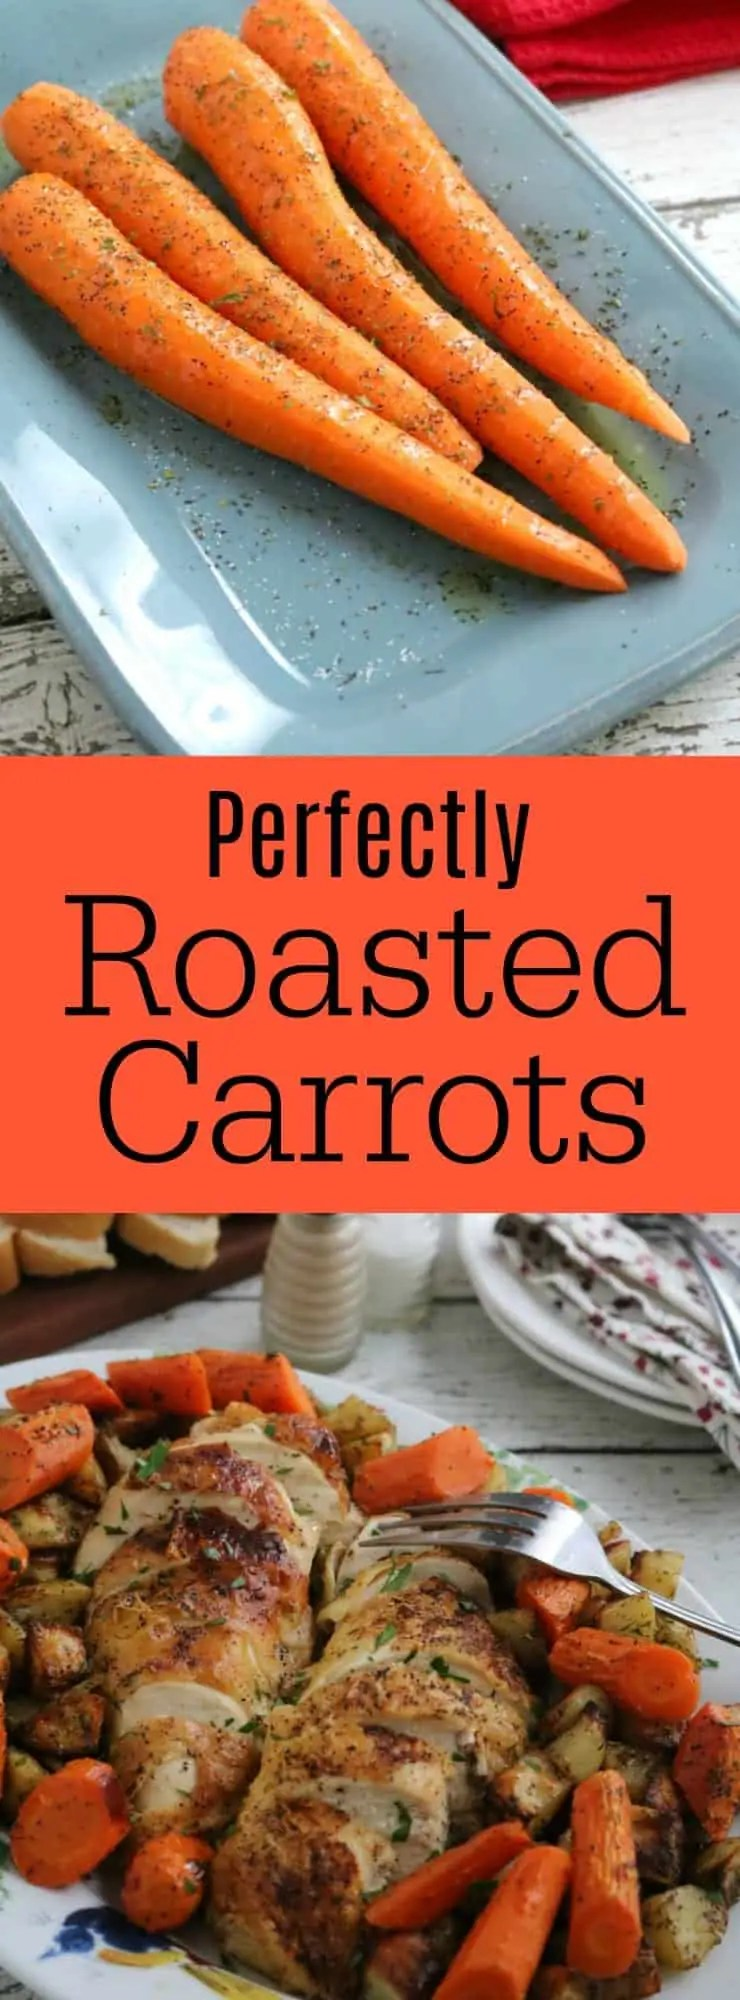 Easy Oven Roasted Carrots are the perfect side for weeknight meals and holiday dinners. {permalink} #Easy #whole #Roasted #Carrots #Oven